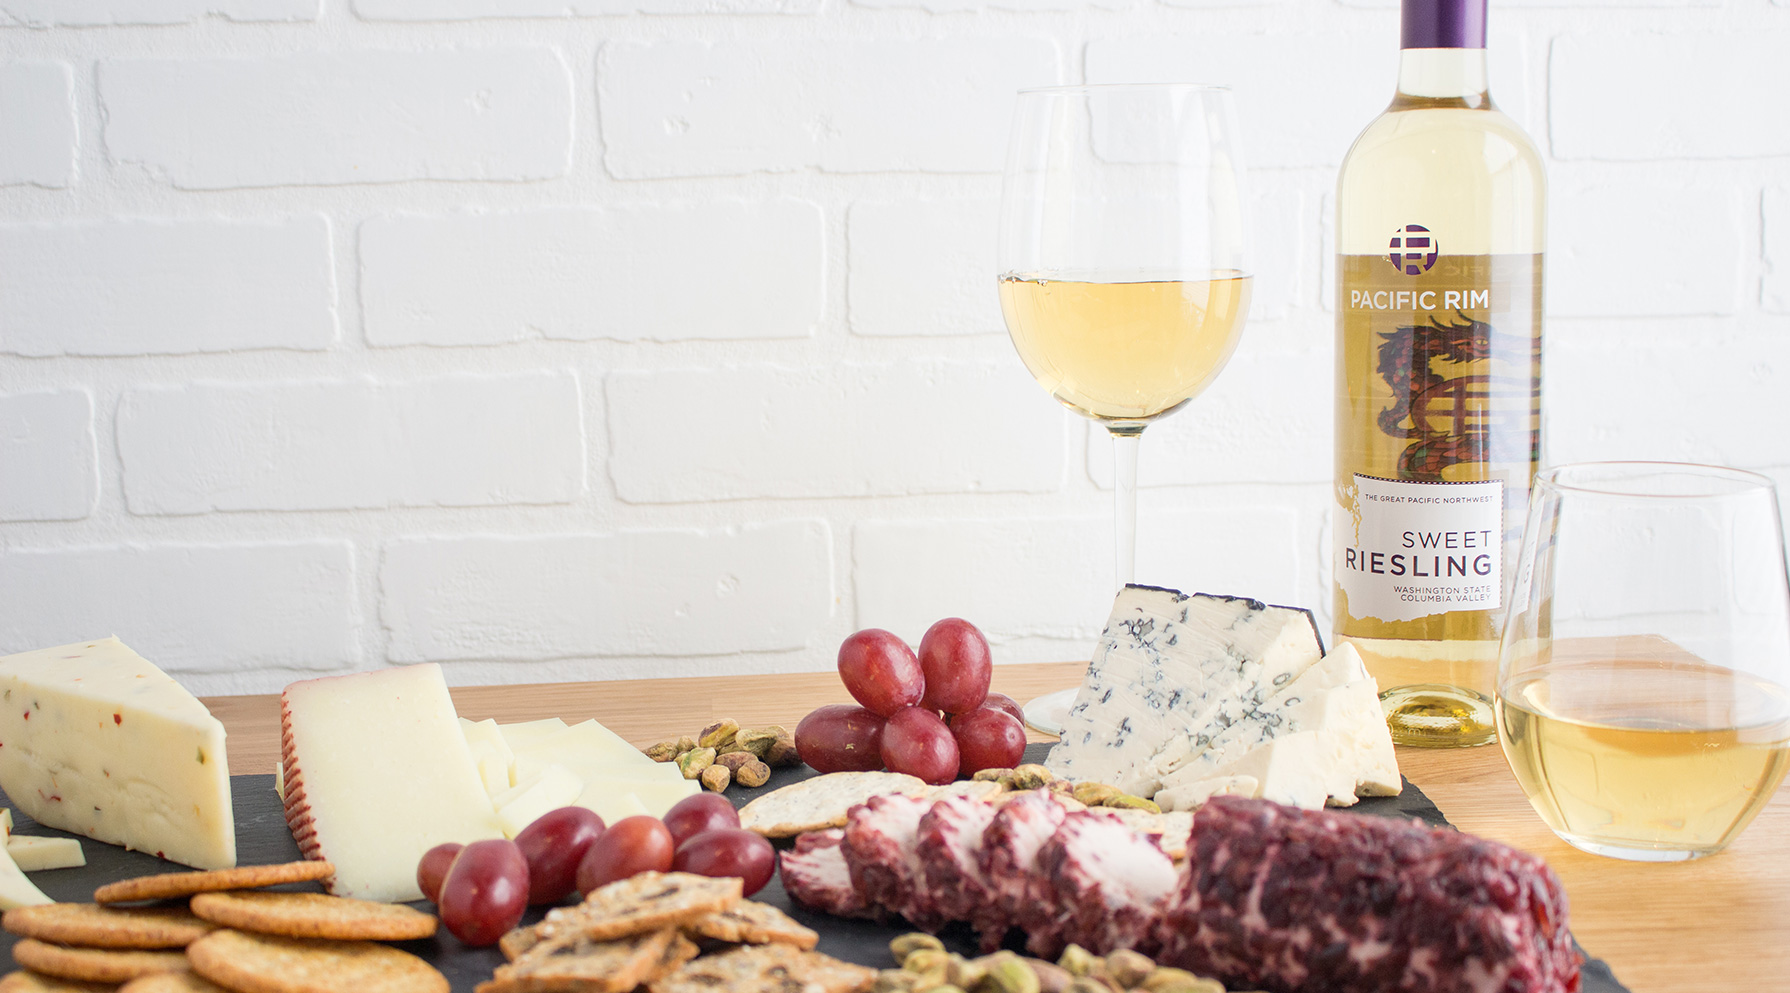 cheese platter, pacific rim wine bottle, and glass of wine